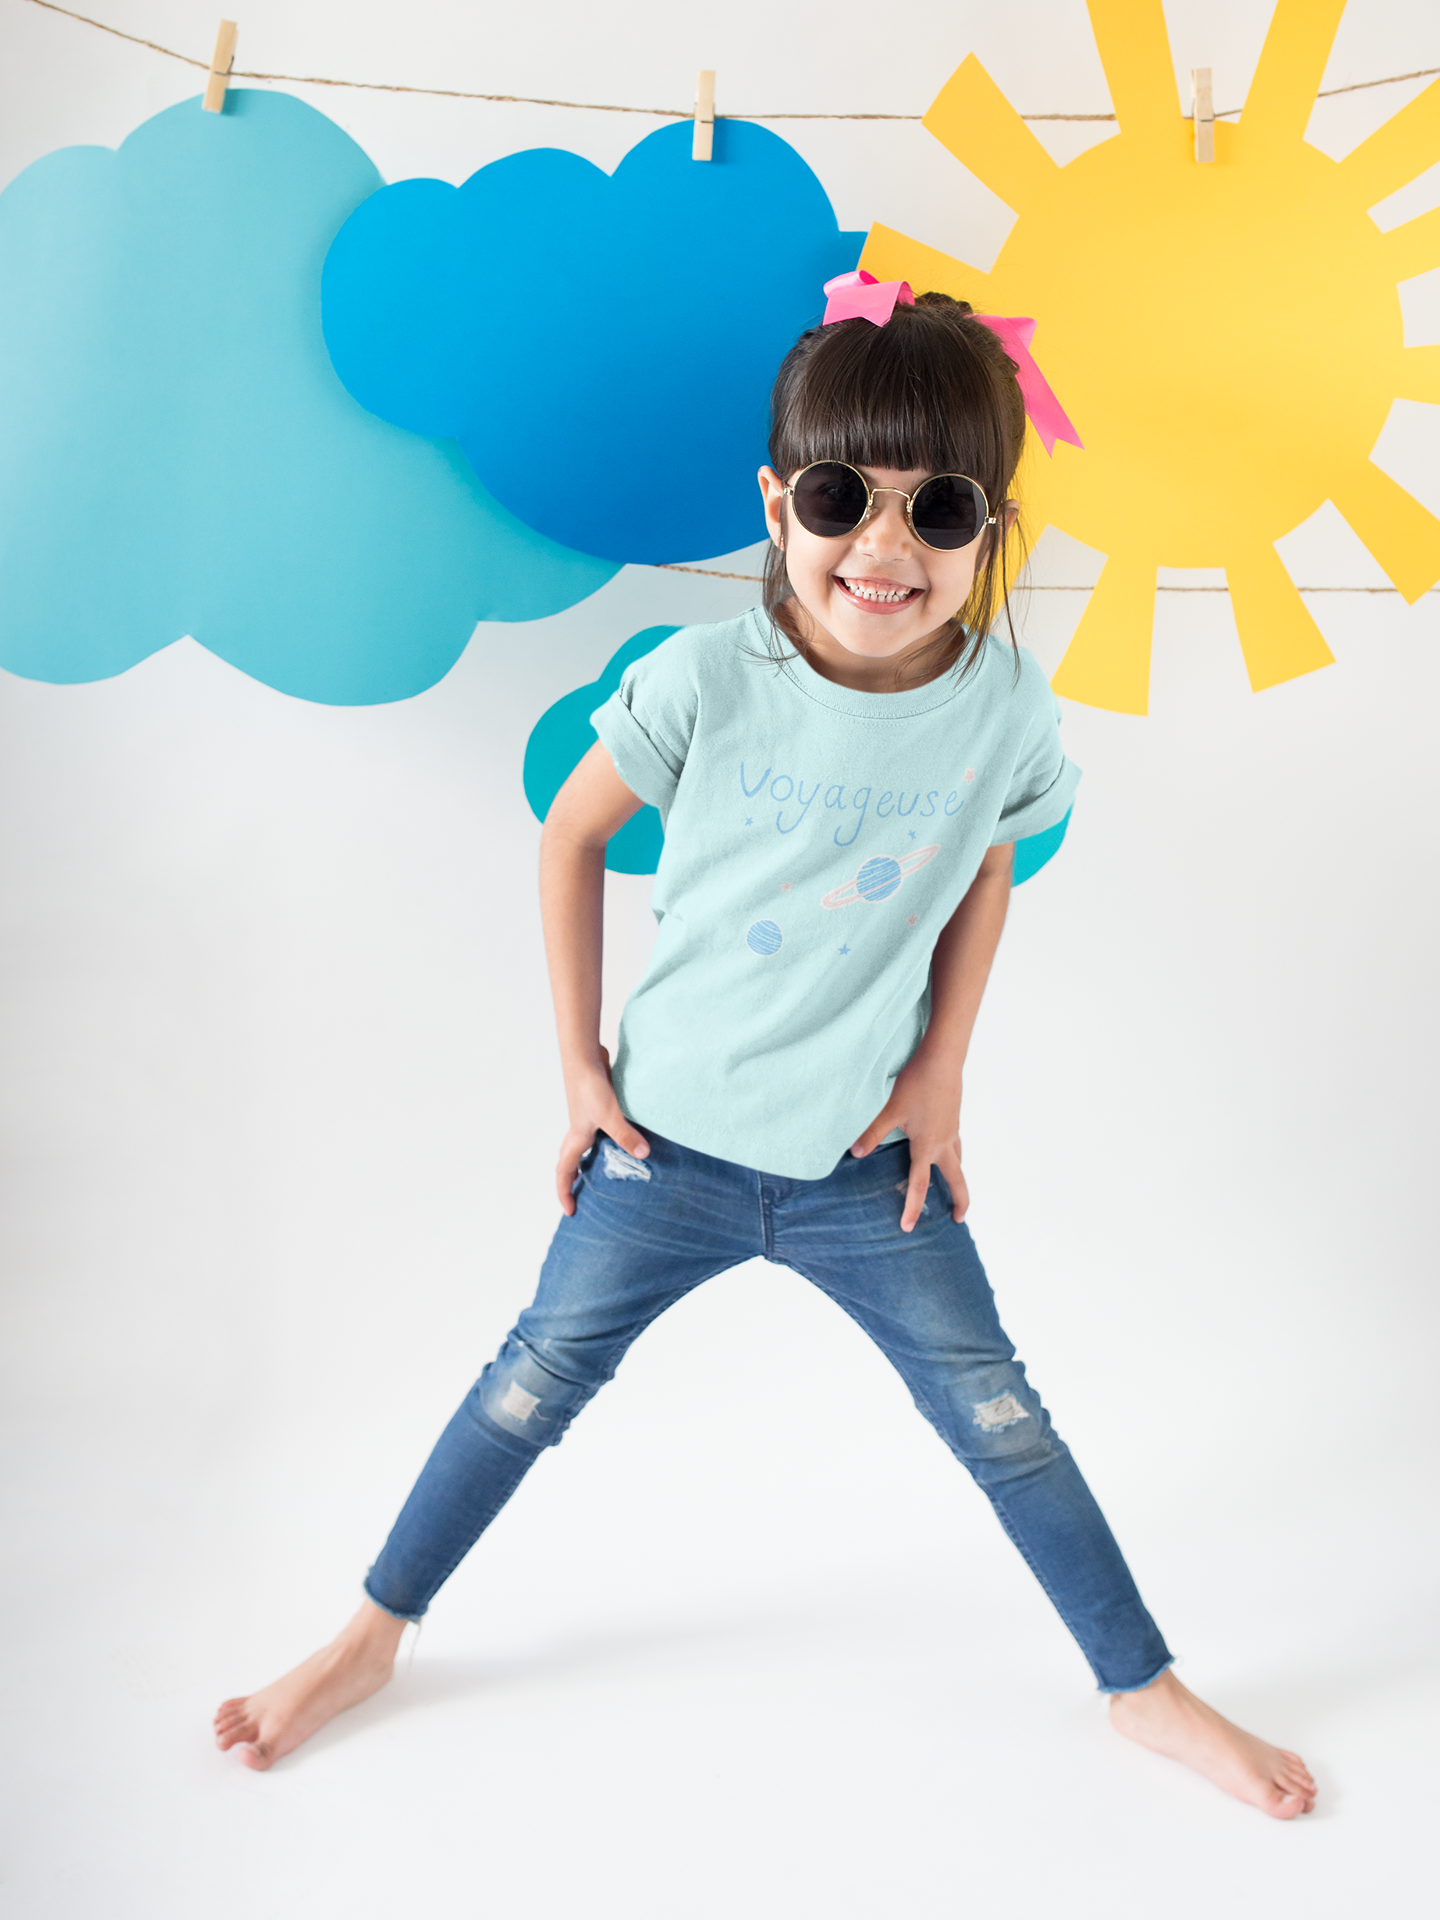 happy-girl-wearing-a-t-shirt-mockup-and-round-sunglasses-under-sky-decorations-a19478.png